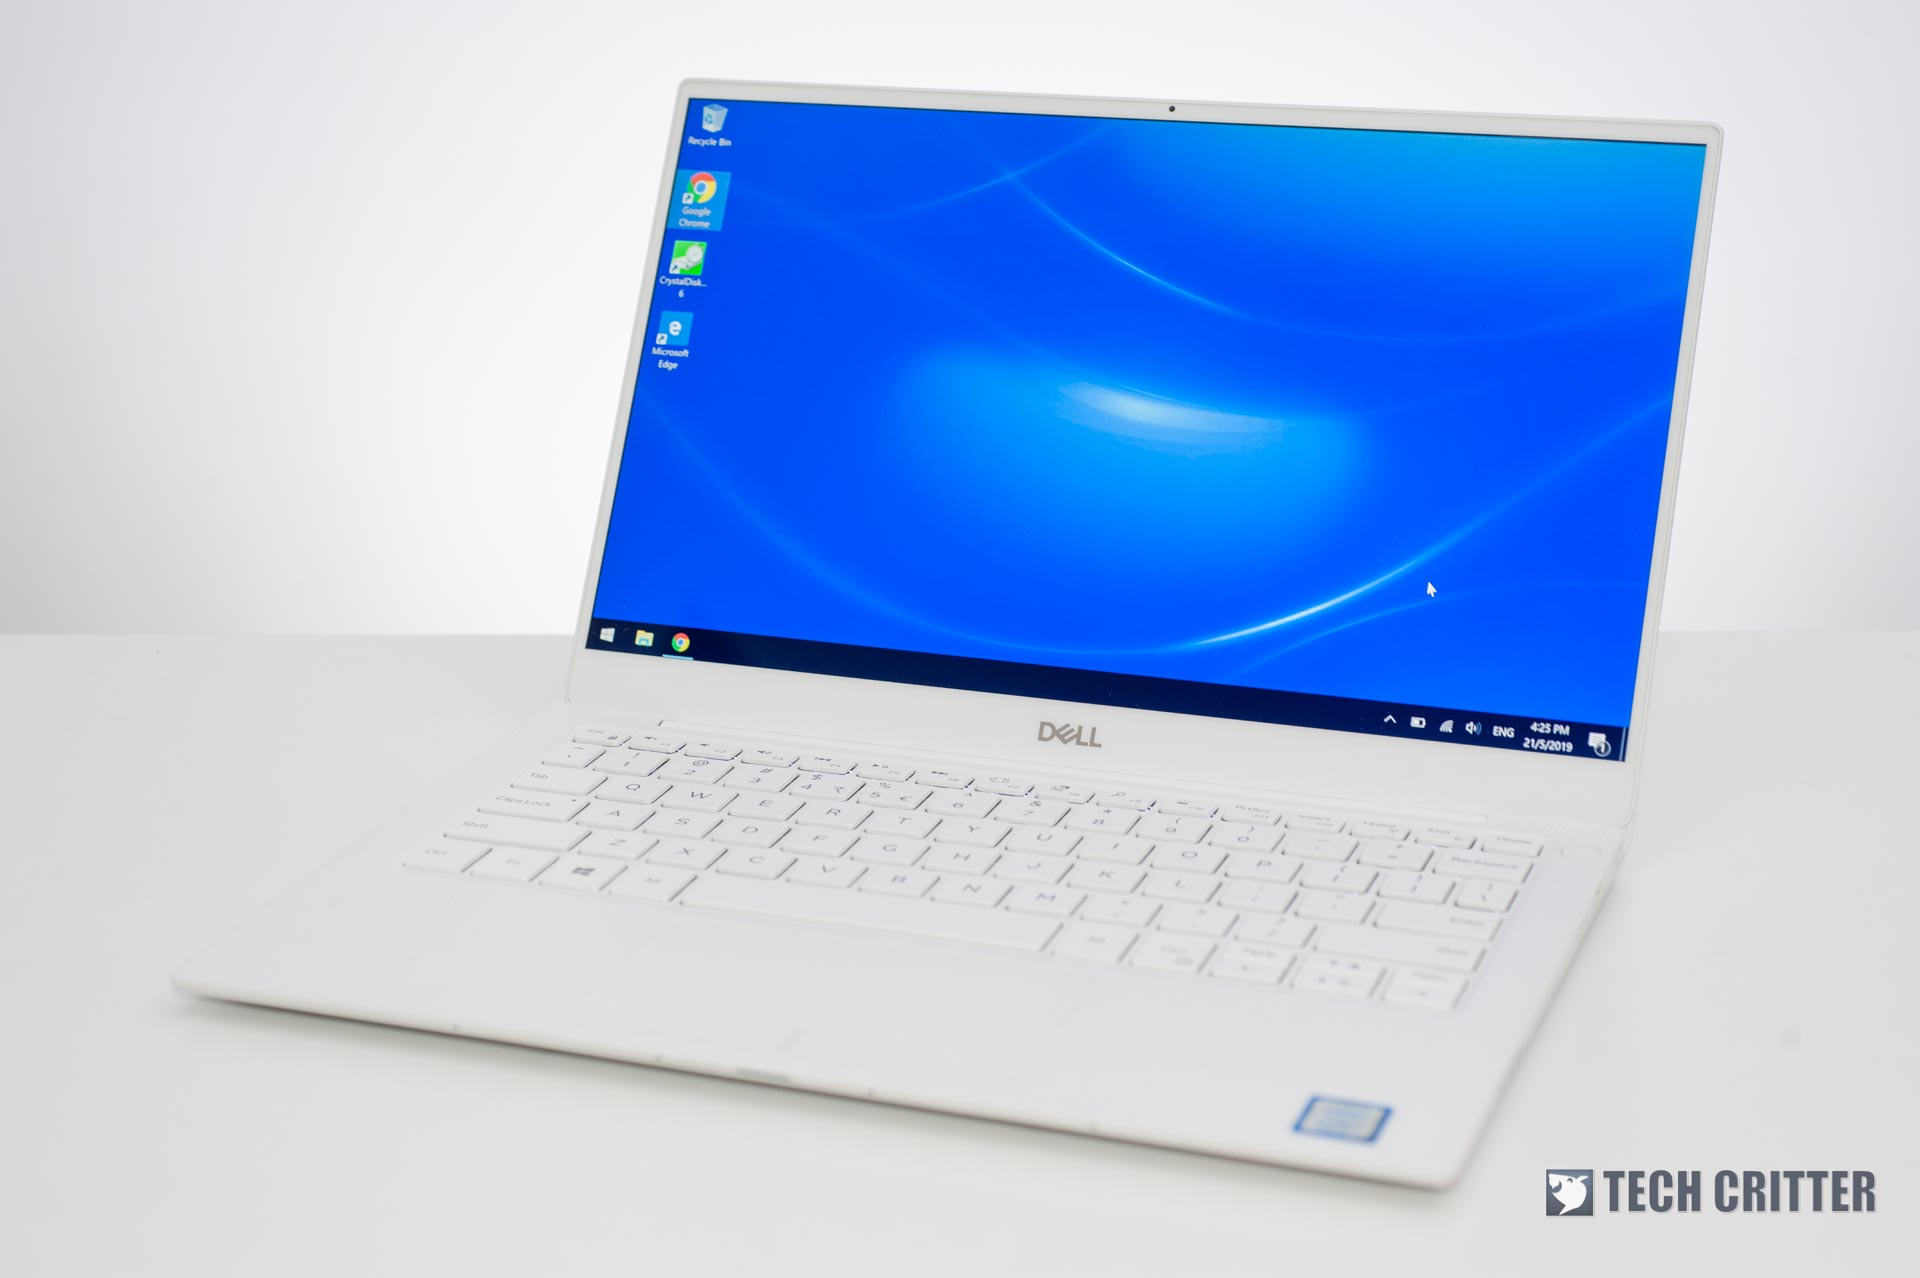 Review - Dell XPS 13 9380 (2019)